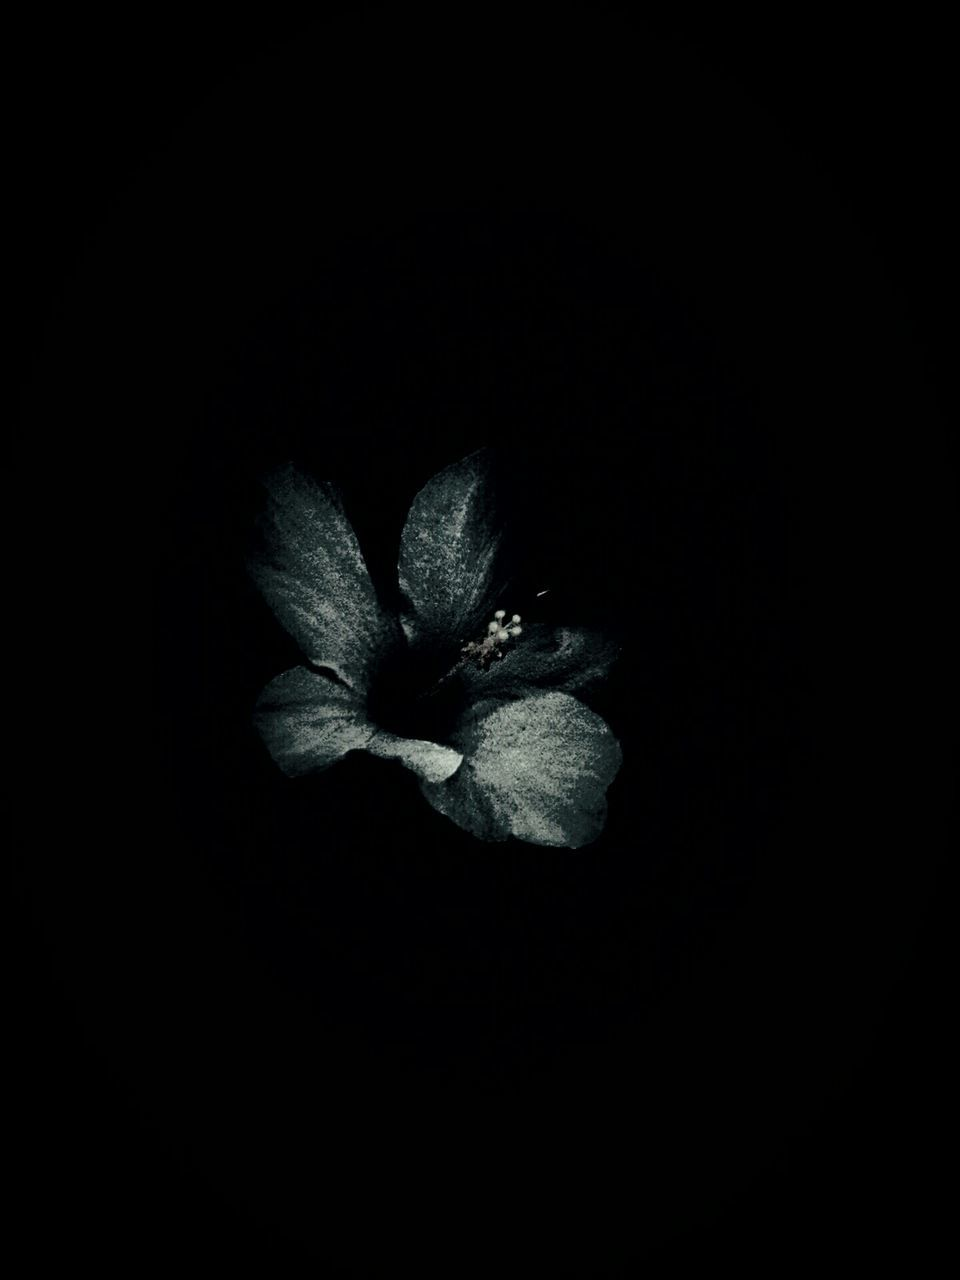 flower, petal, beauty in nature, nature, flower head, growth, fragility, freshness, plant, black background, night, no people, studio shot, close-up, outdoors